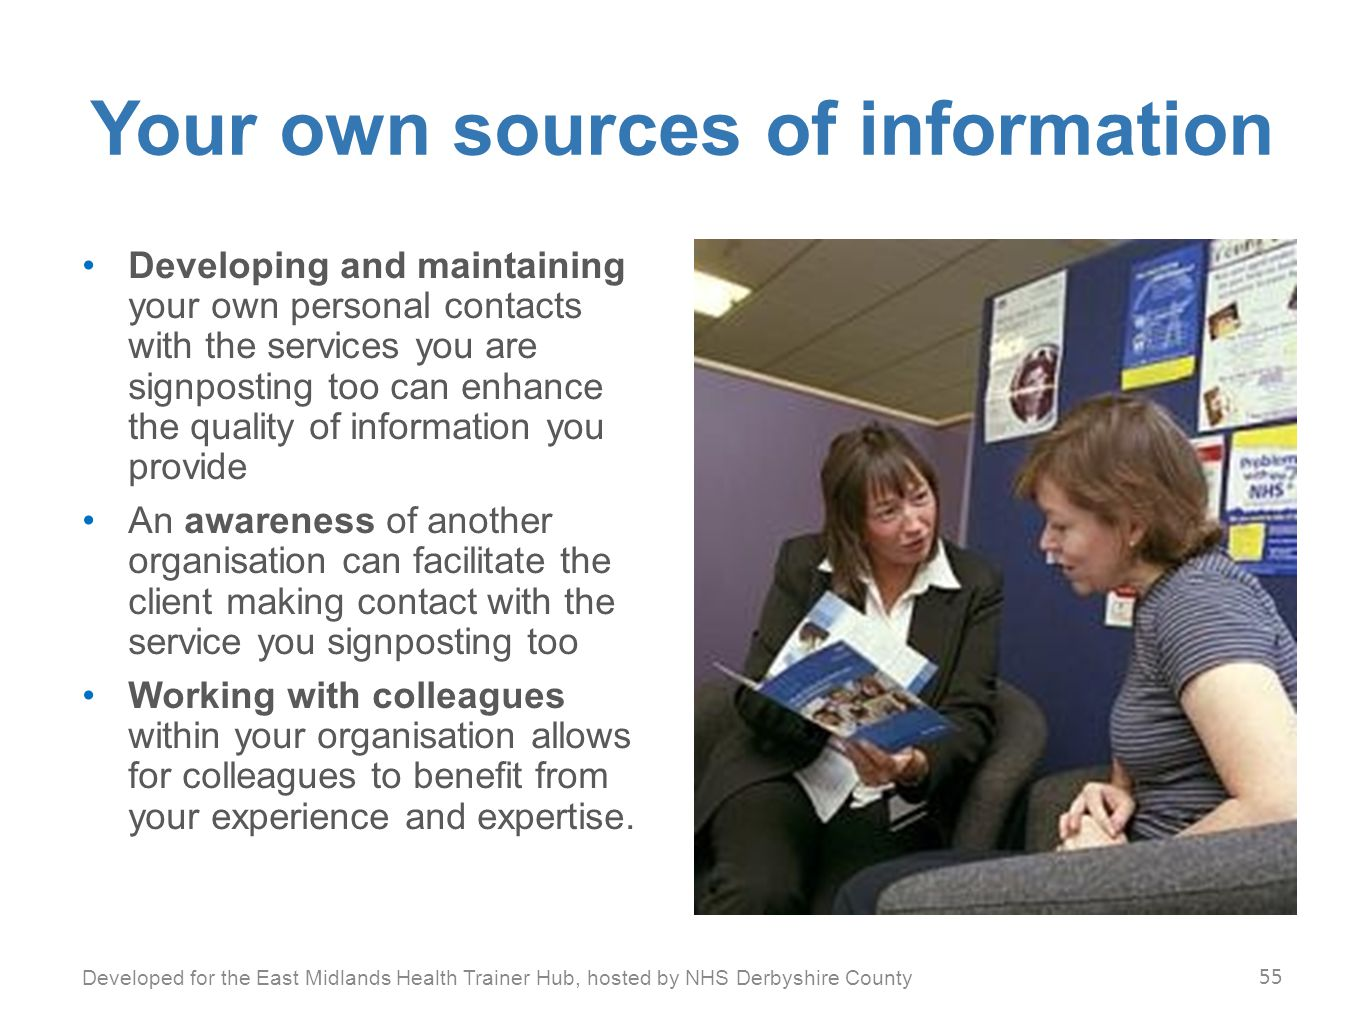 Your own sources of information Developing and maintaining your own personal contacts with the services you are signposting too can enhance the quality of information you provide An awareness of another organisation can facilitate the client making contact with the service you signposting too Working with colleagues within your organisation allows for colleagues to benefit from your experience and expertise.